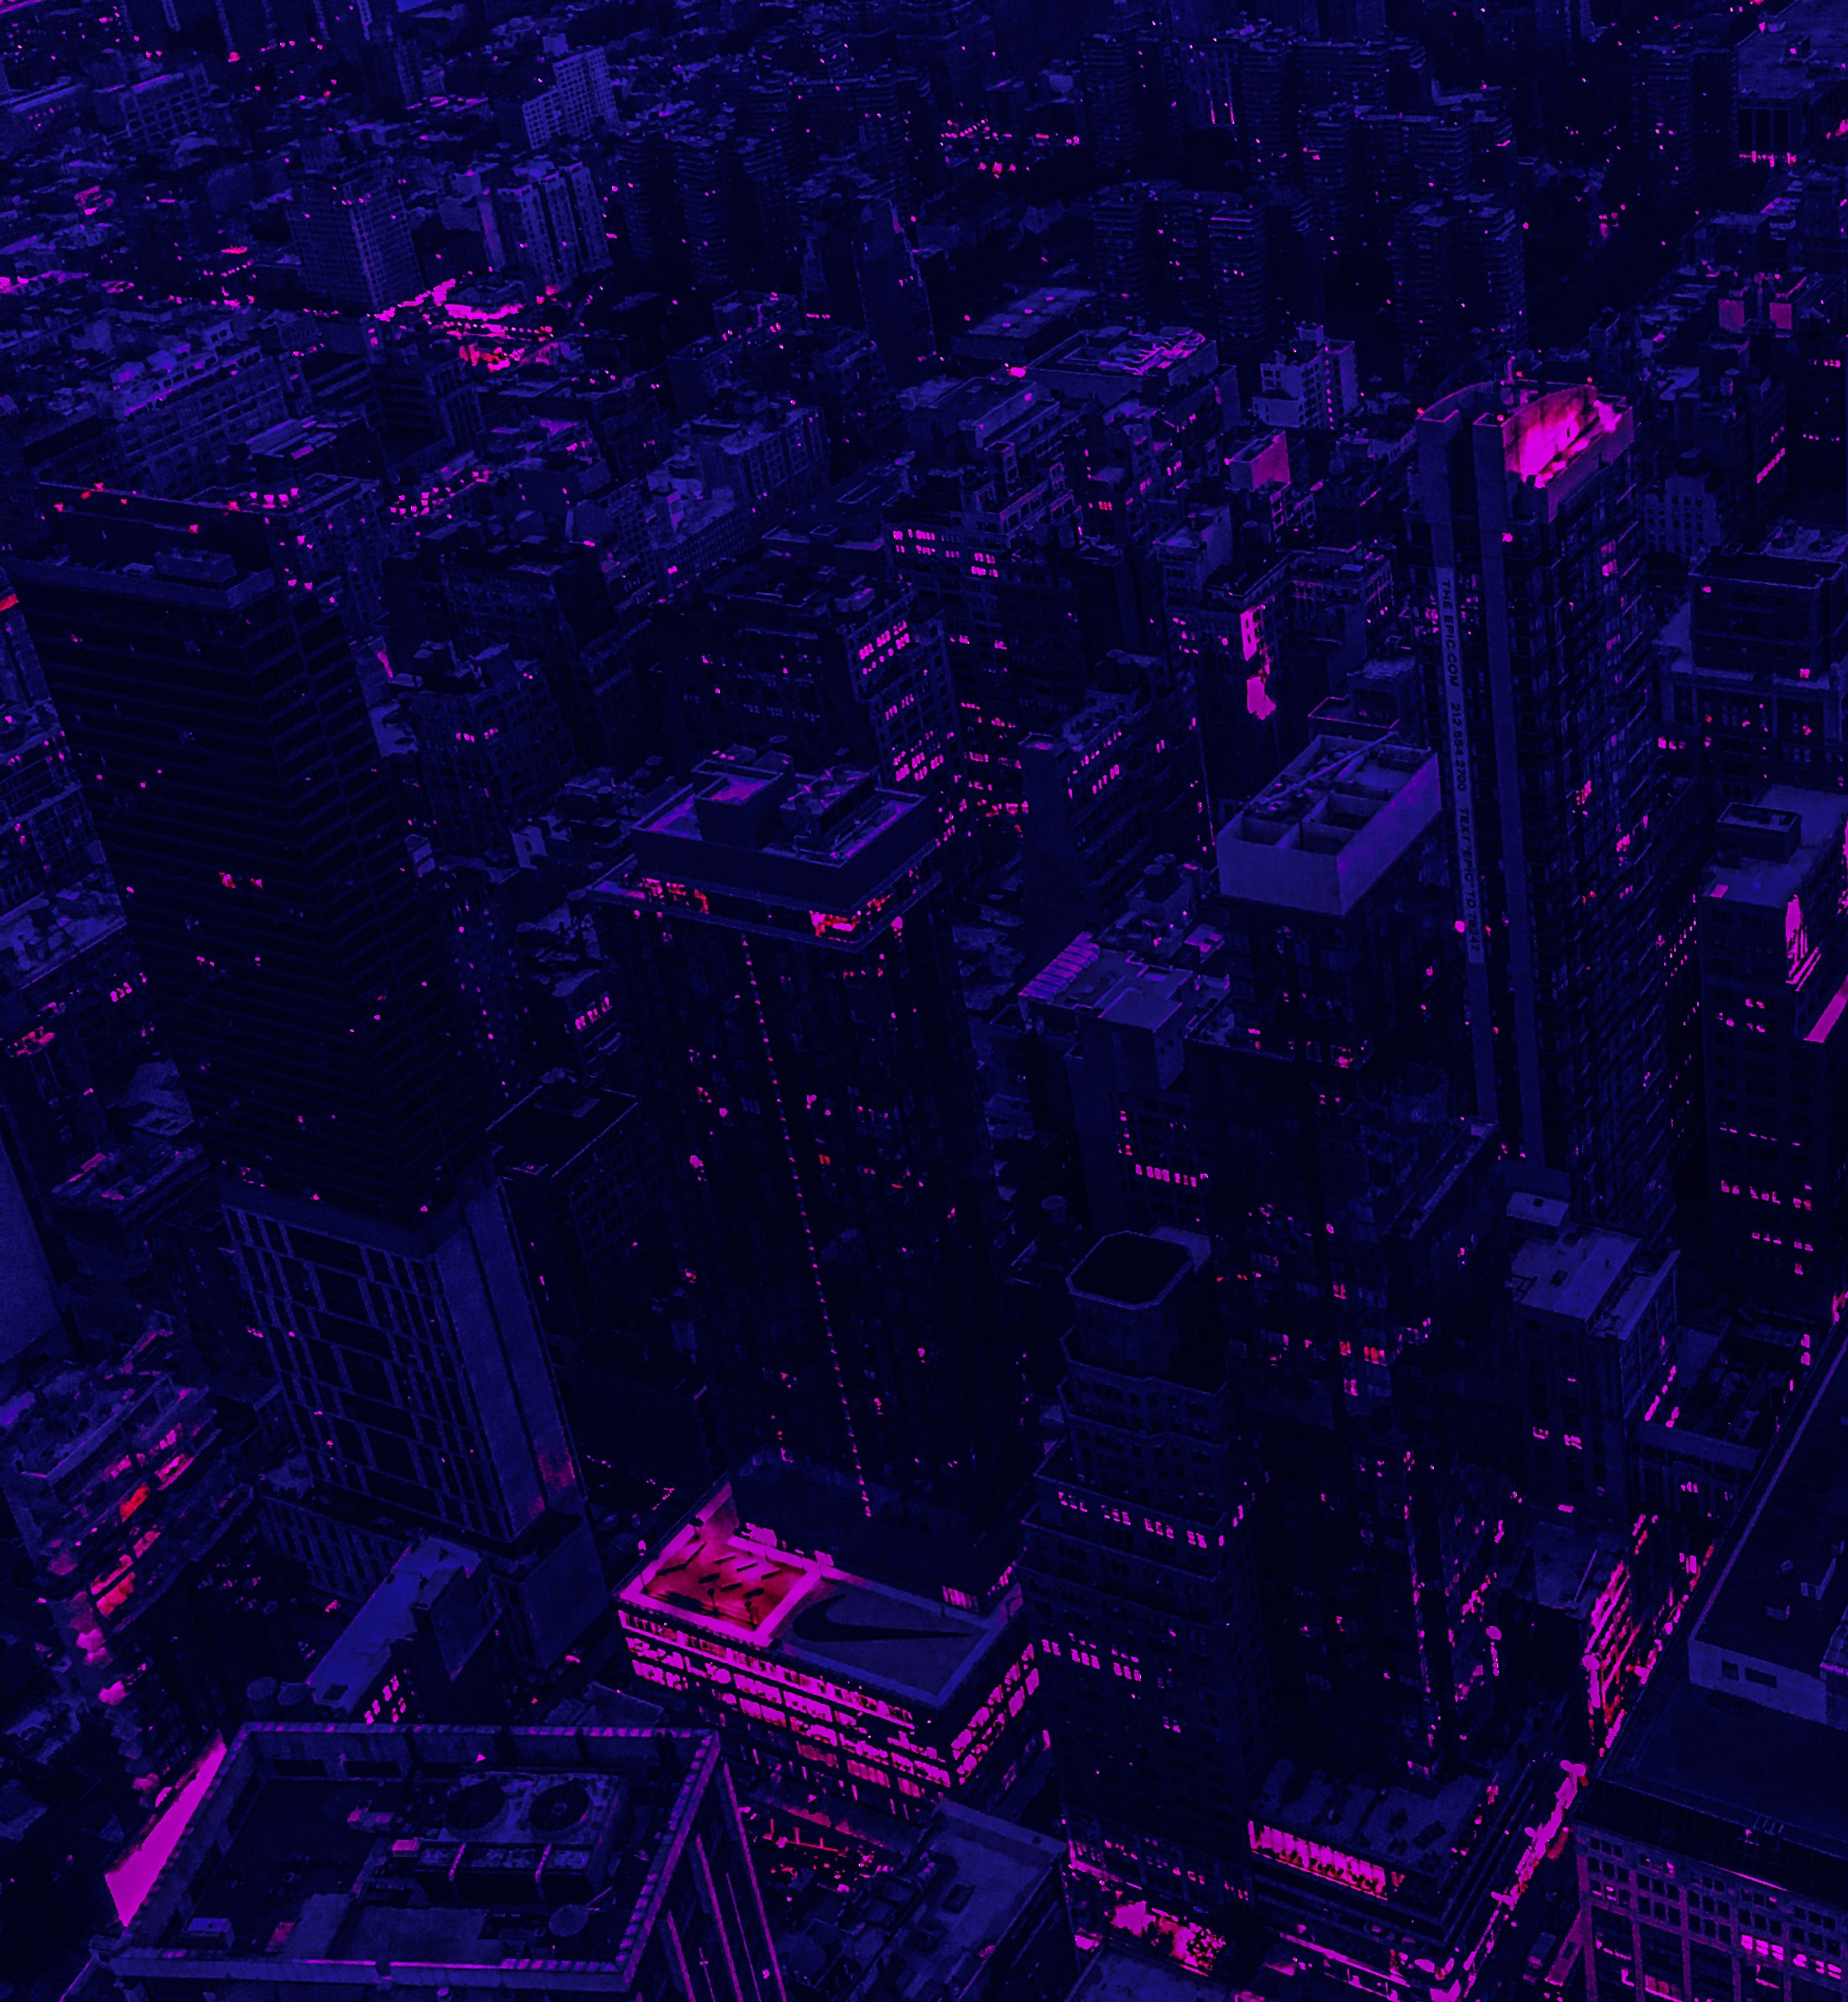 155321 free wallpaper 320x480 for phone, download images Violet, City, Building, View From Above, Dark, Purple 320x480 for mobile